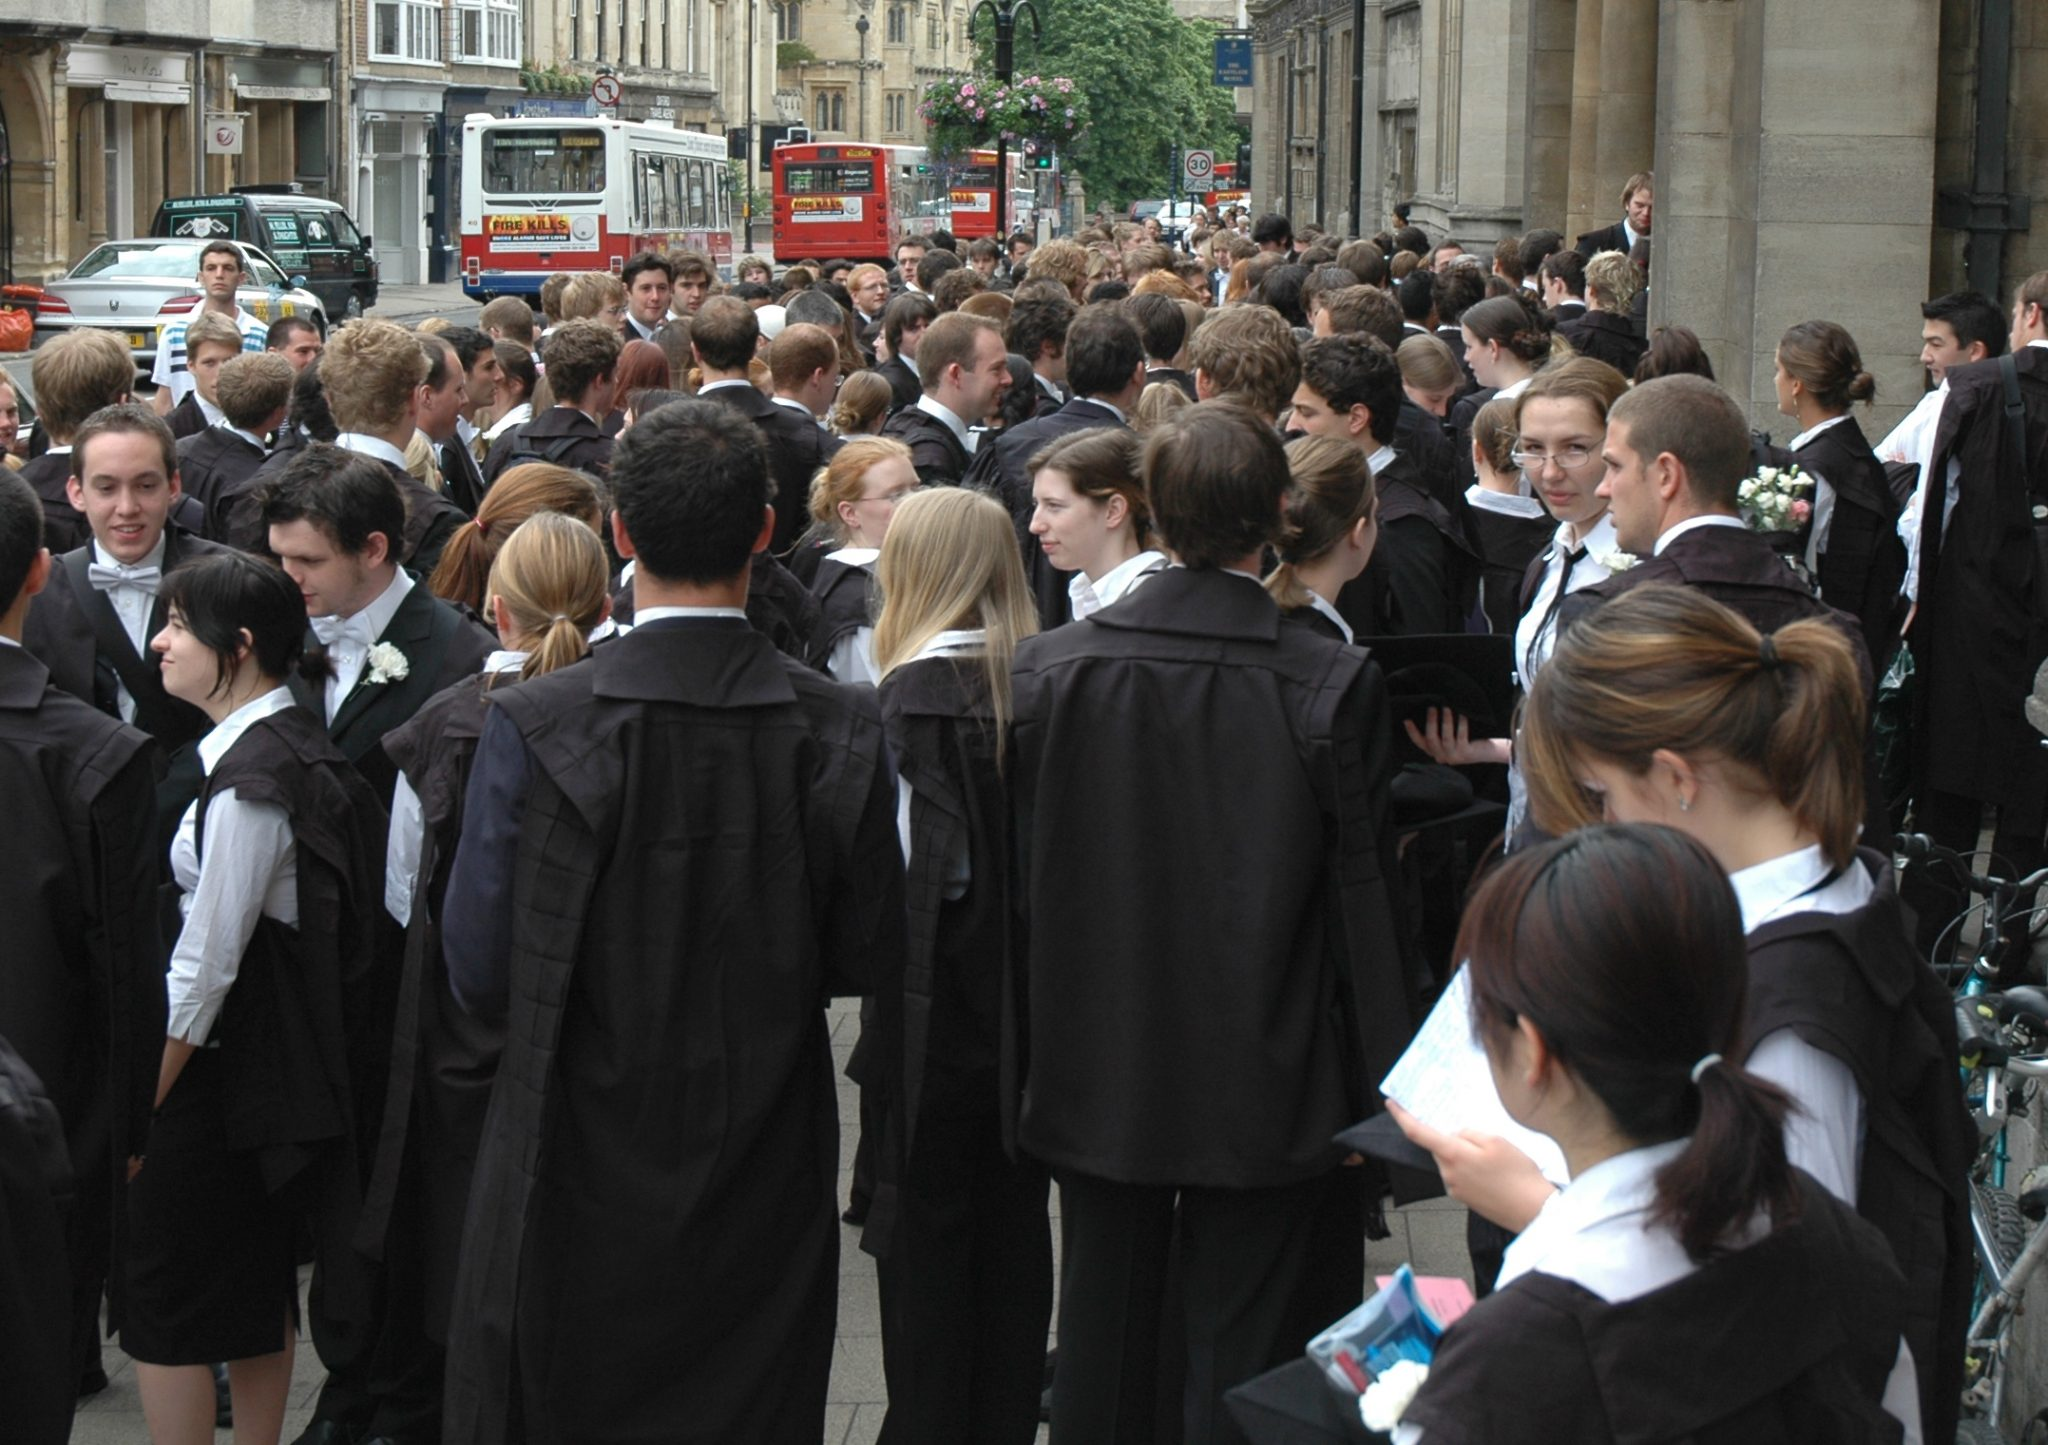 Students_Oxford_University